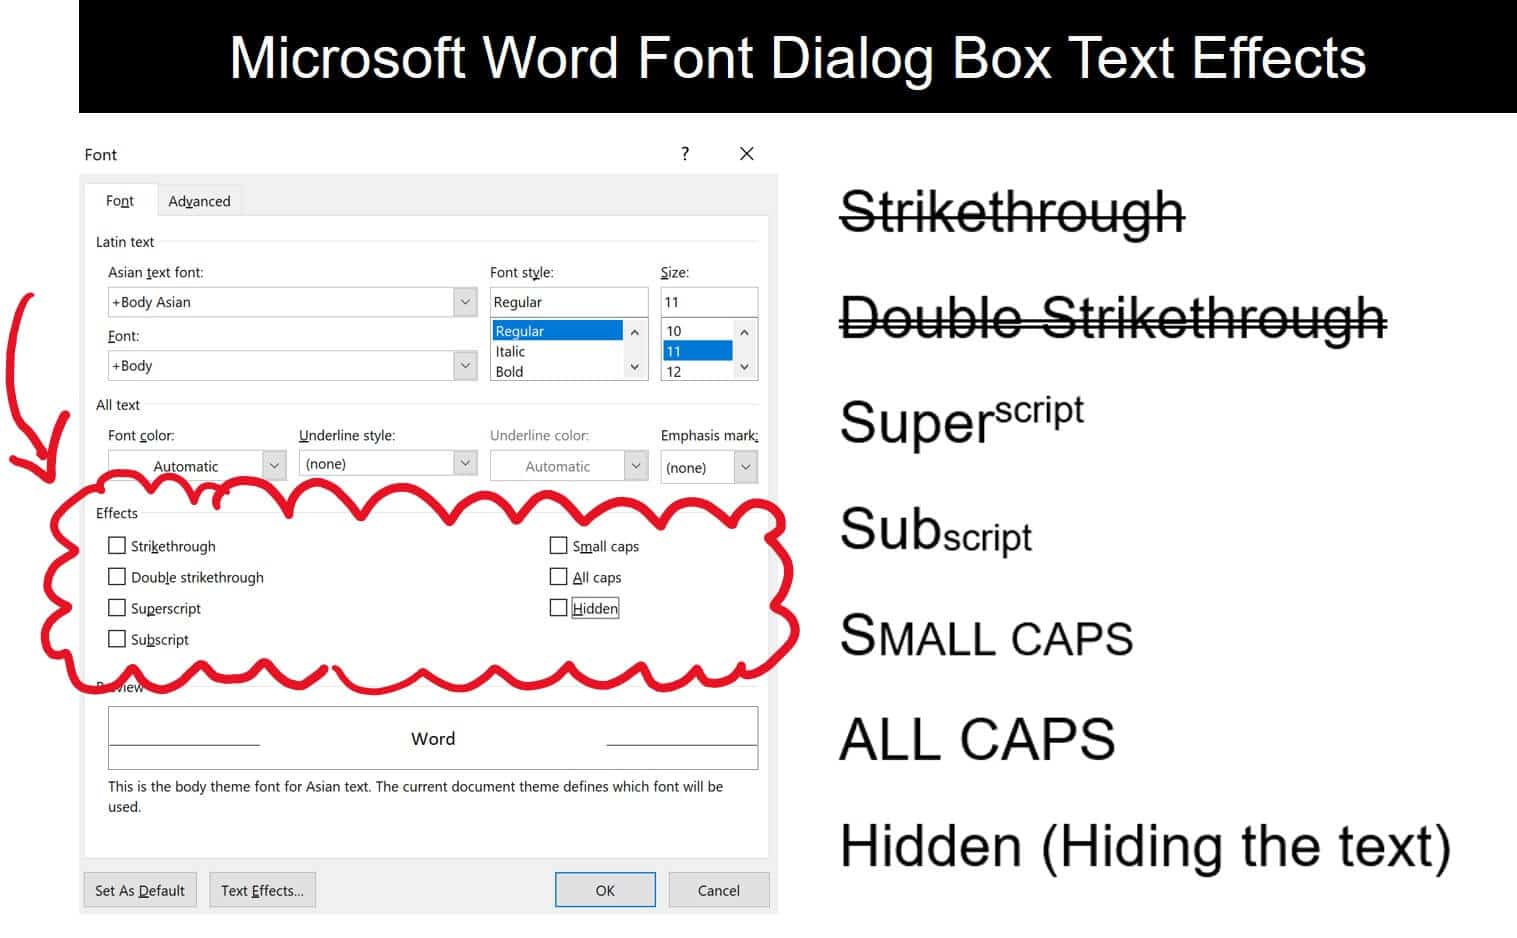 Examples of the different text effects options available in the Font dialog box in Microsoft Word